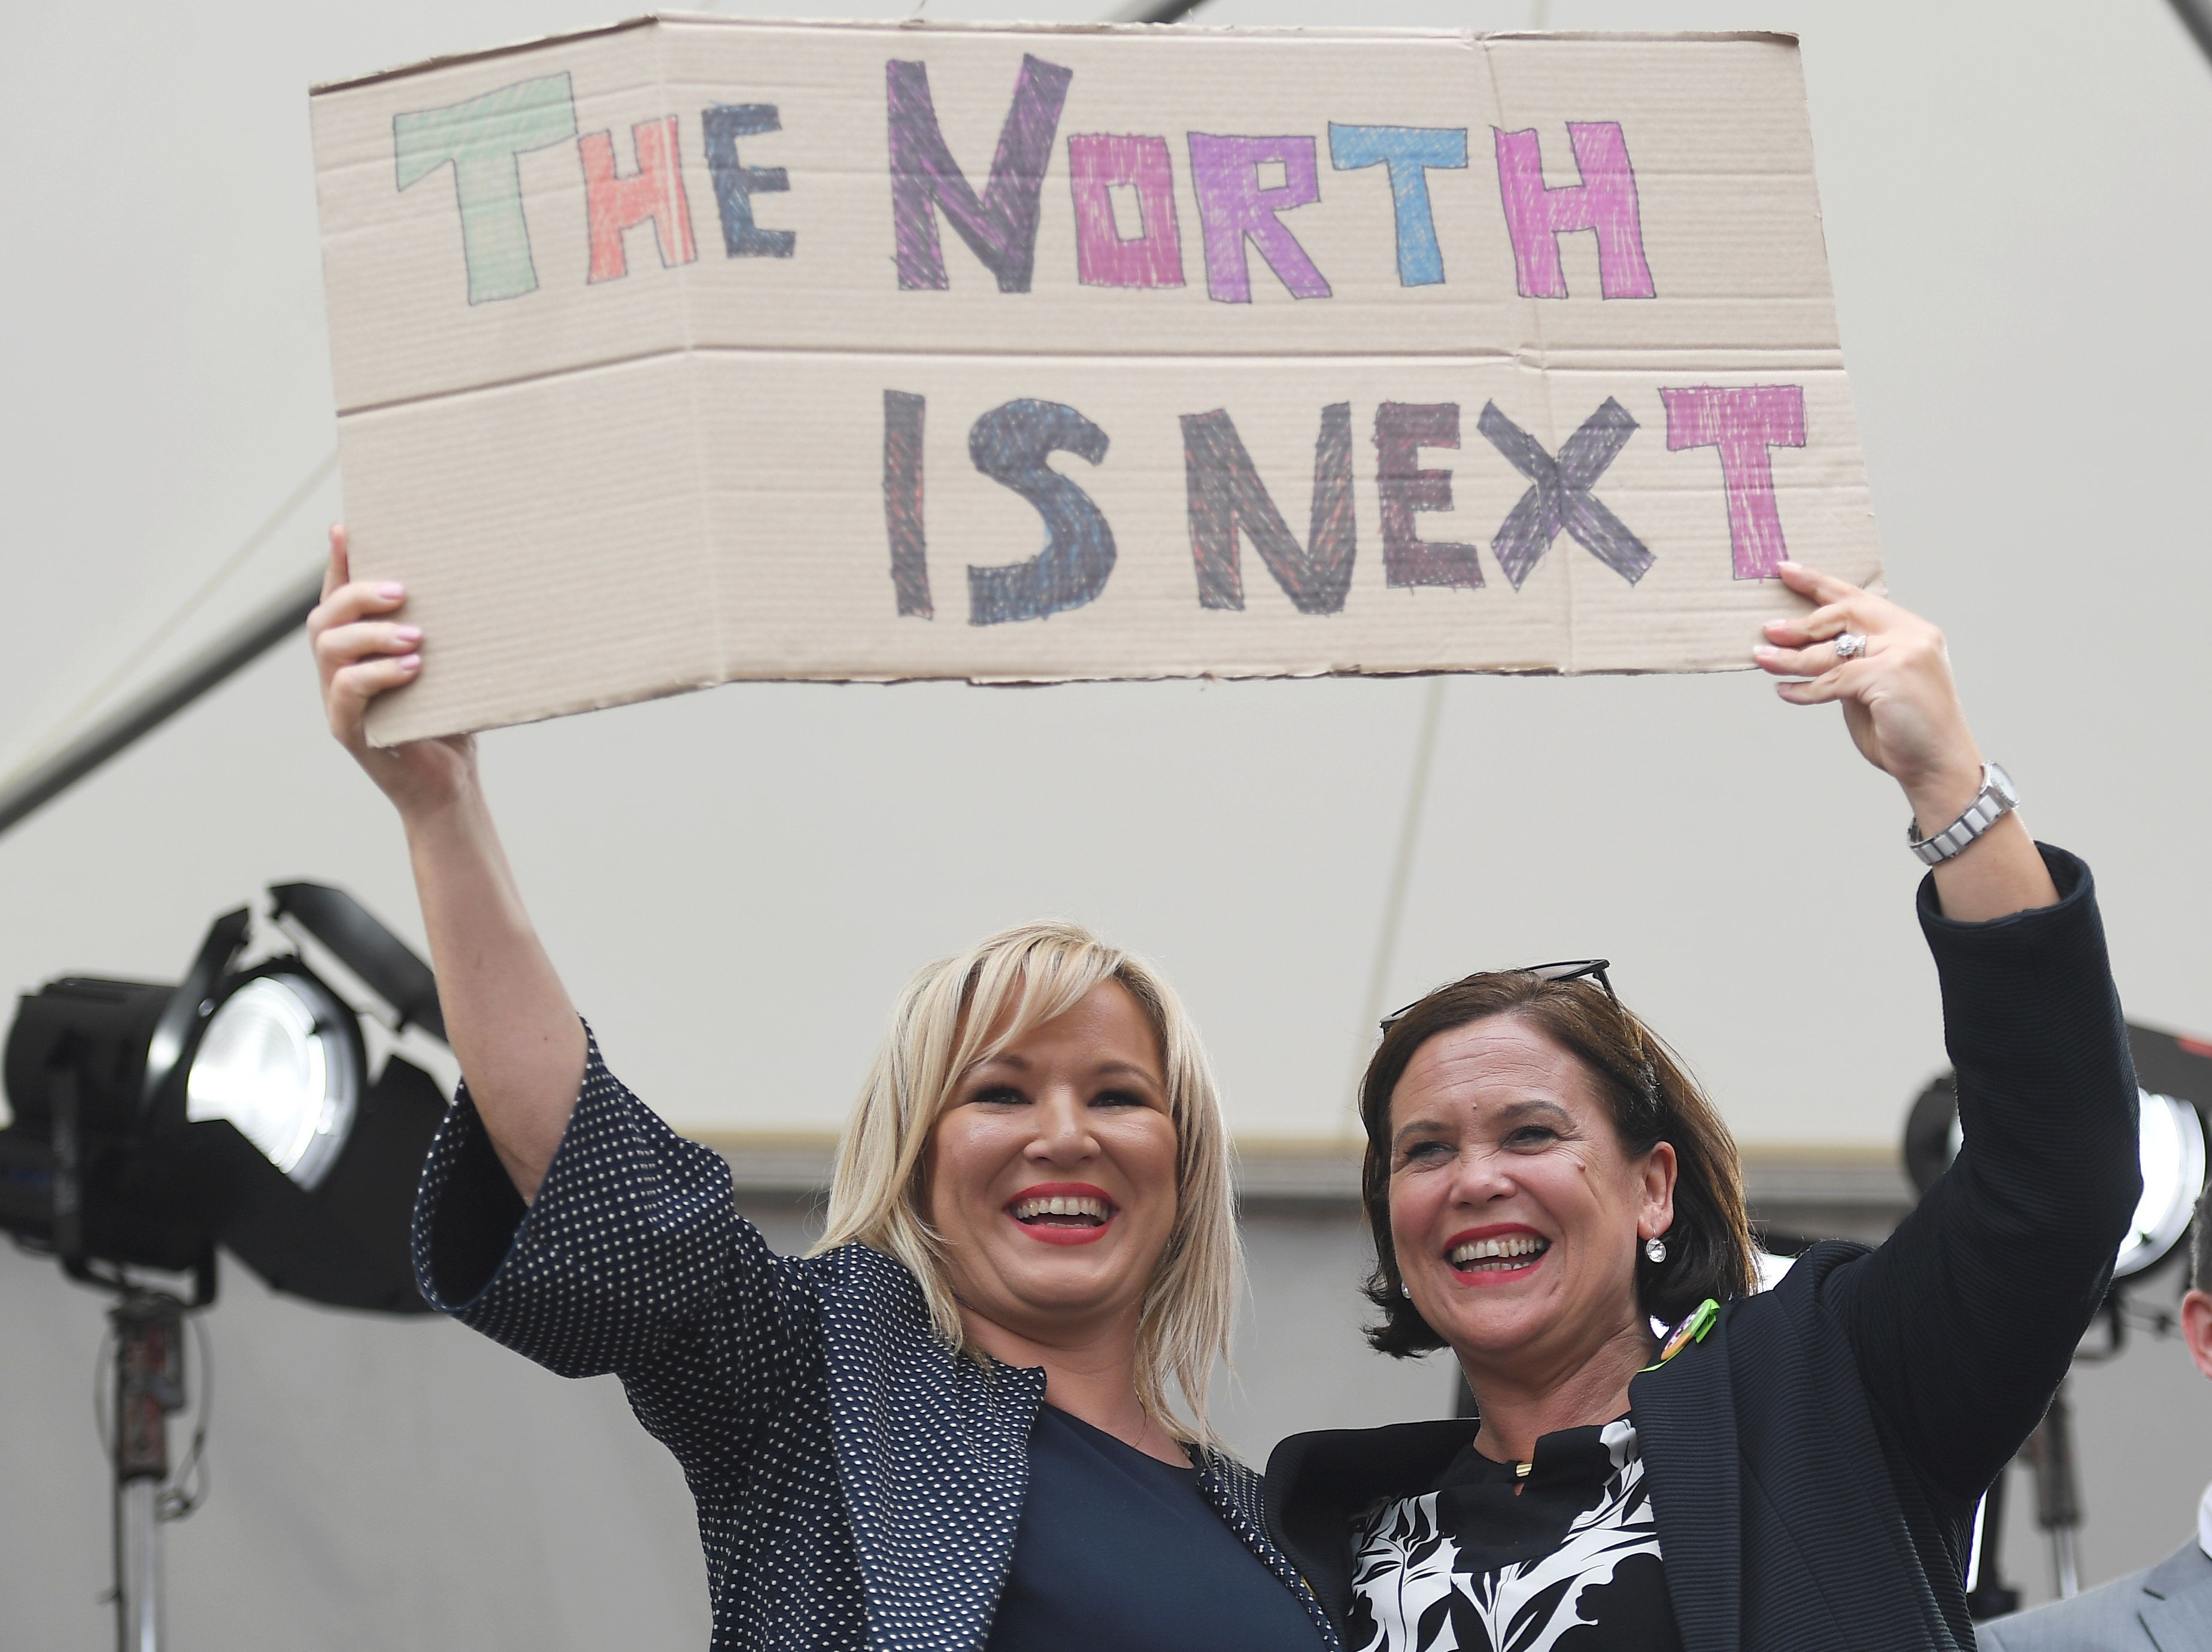 Sinn Féin Members Vote To Liberalise Access To